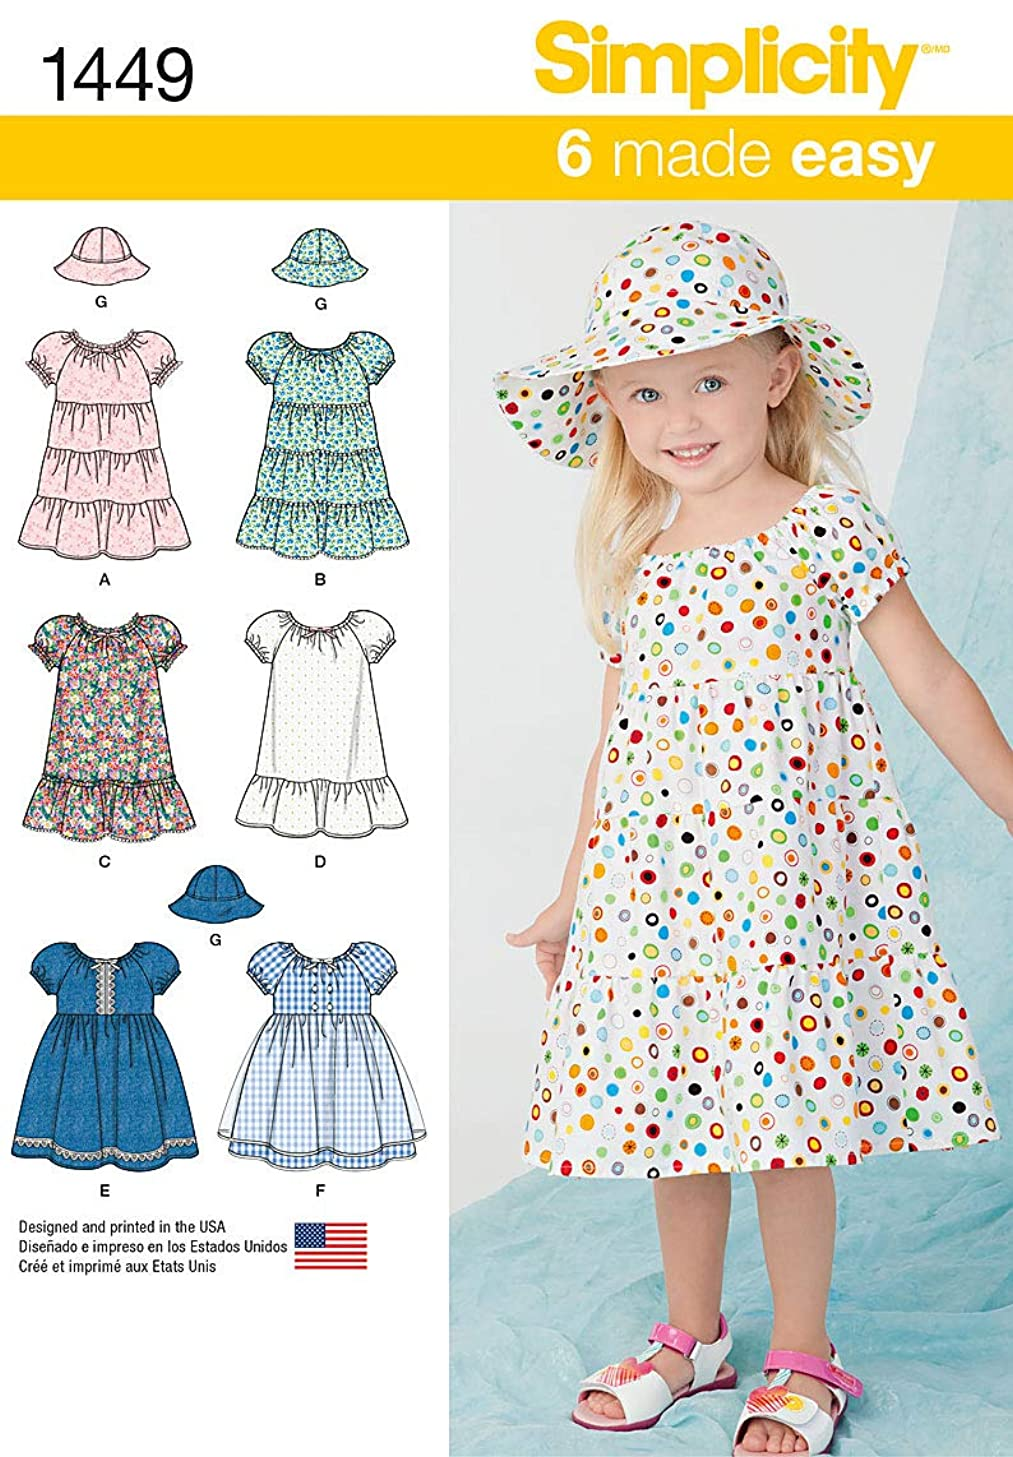 Simplicity 1449 Easy to Sew Toddler Girl's Dress and Hat Sewing Patterns, Sizes 2-4